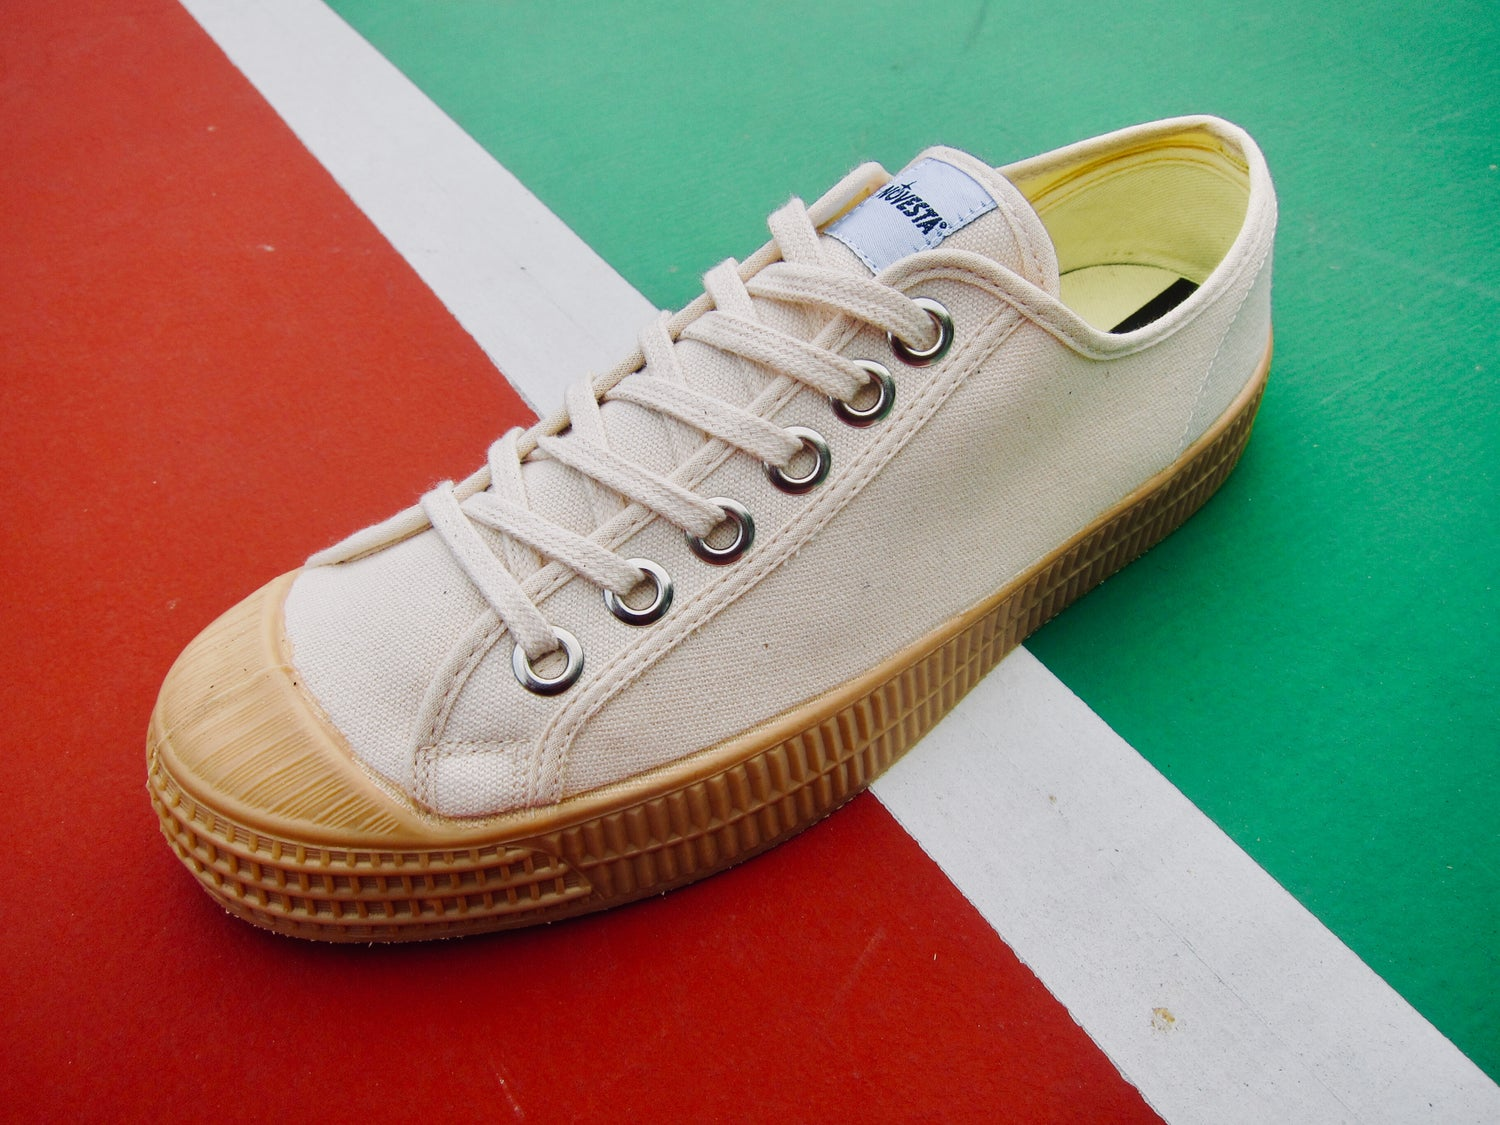 Image of Novesta master lo beige canvas gum sole sneaker shoes made in Slovakia